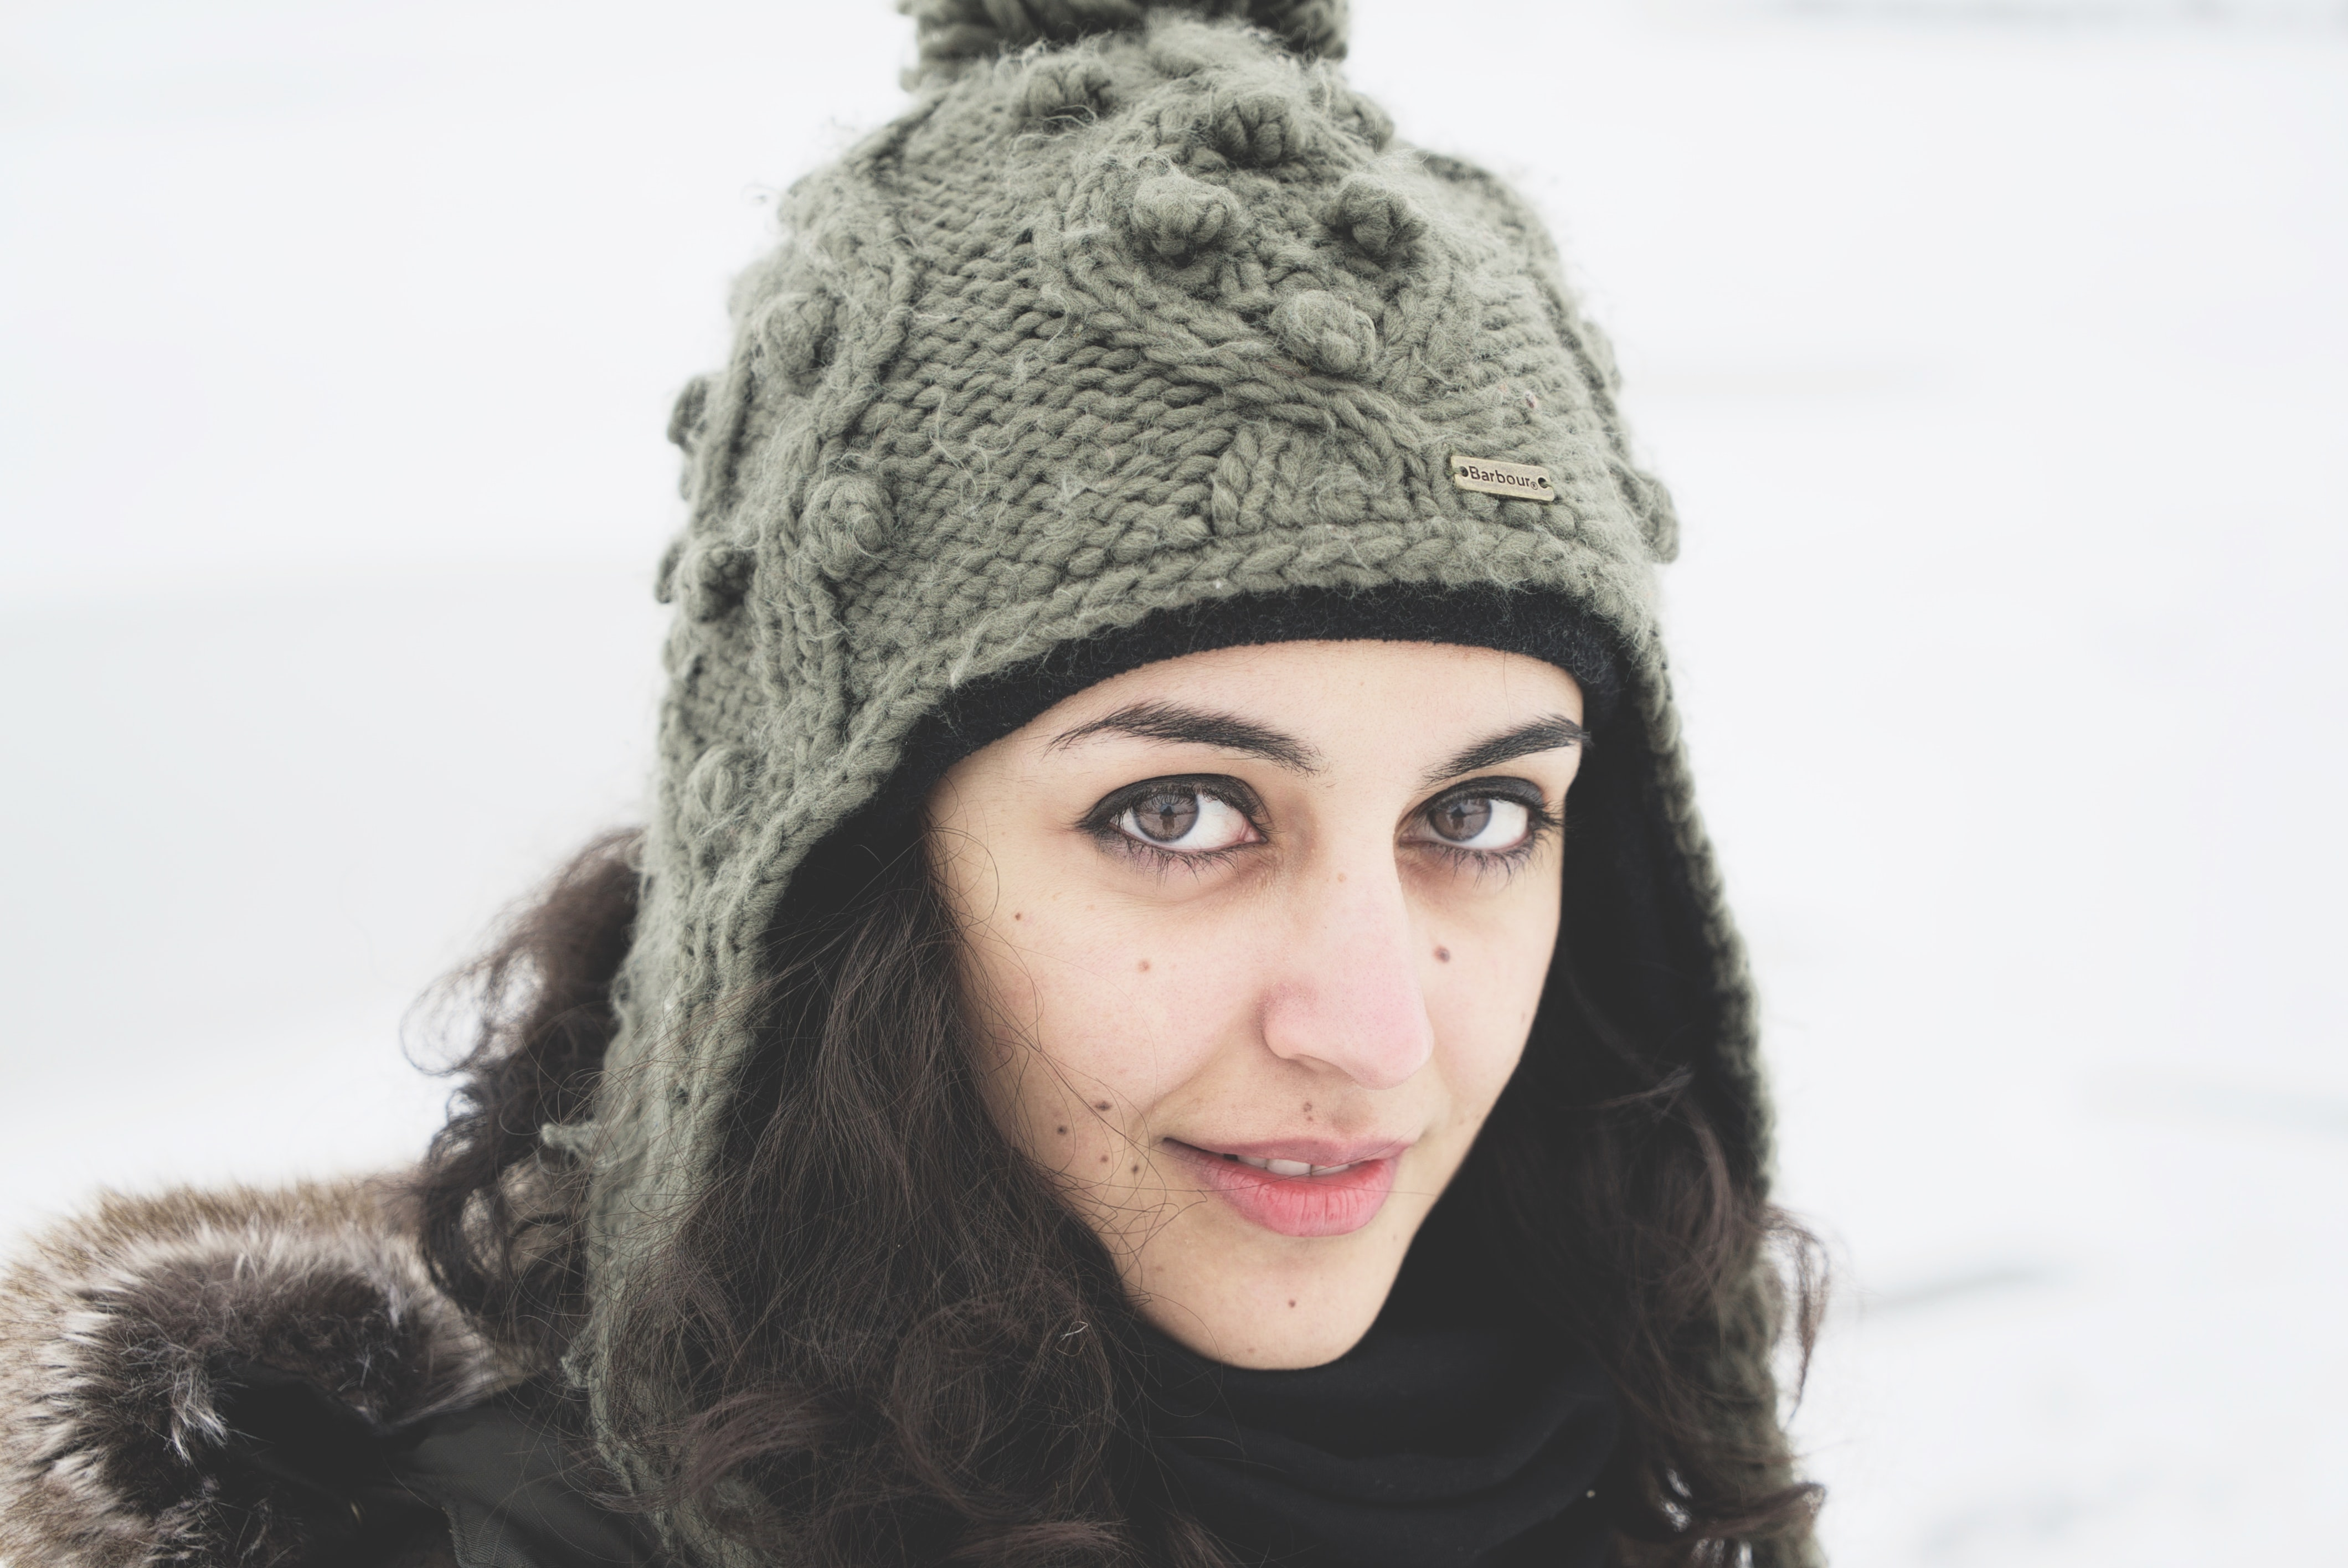 selective focus photography of woman in gray knitted hat